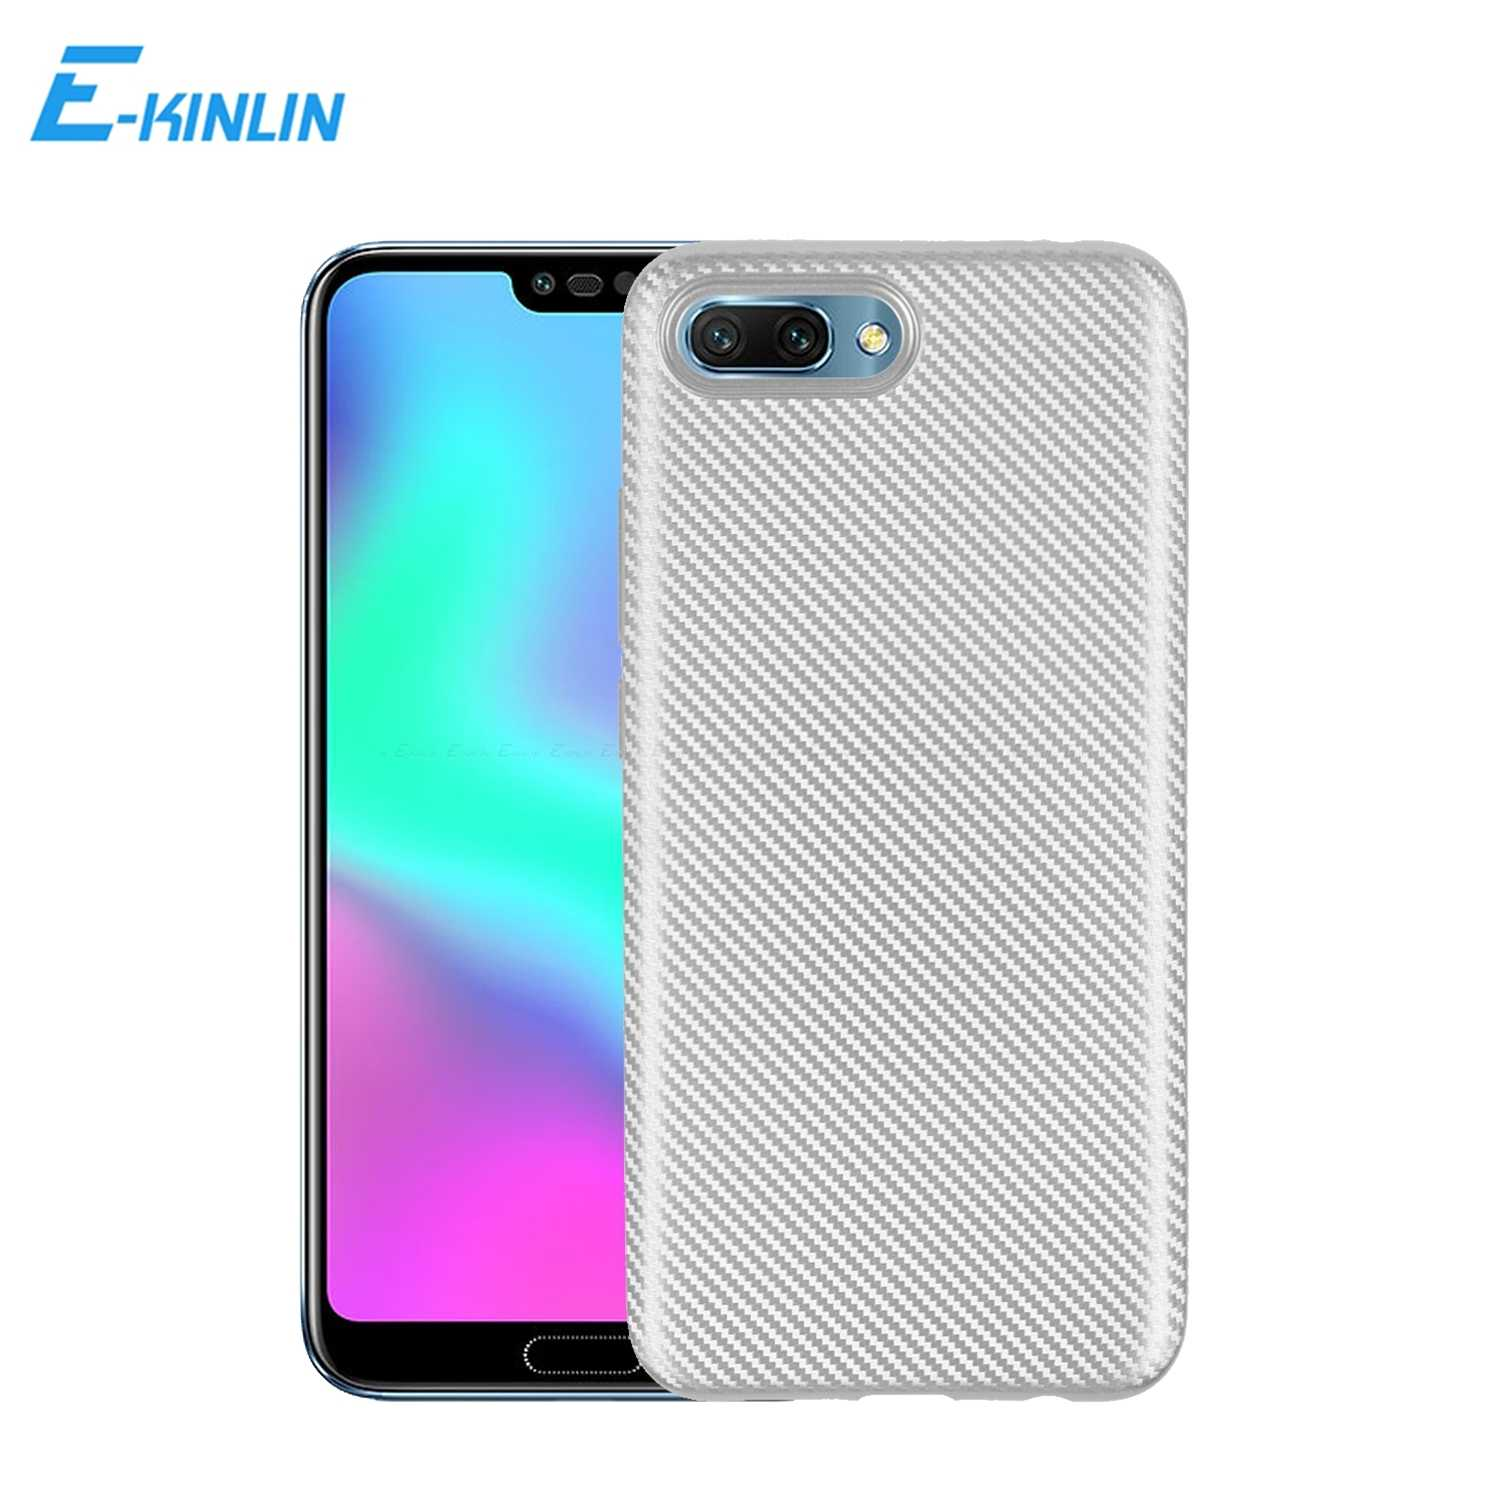 Ultra Thin Light Carbon Fiber Soft Back Cover Case For Huawei Honor 10 7S 9 Youth V9 Play 8 Lite Smart 8X 7X 6A 6C 5C Pro